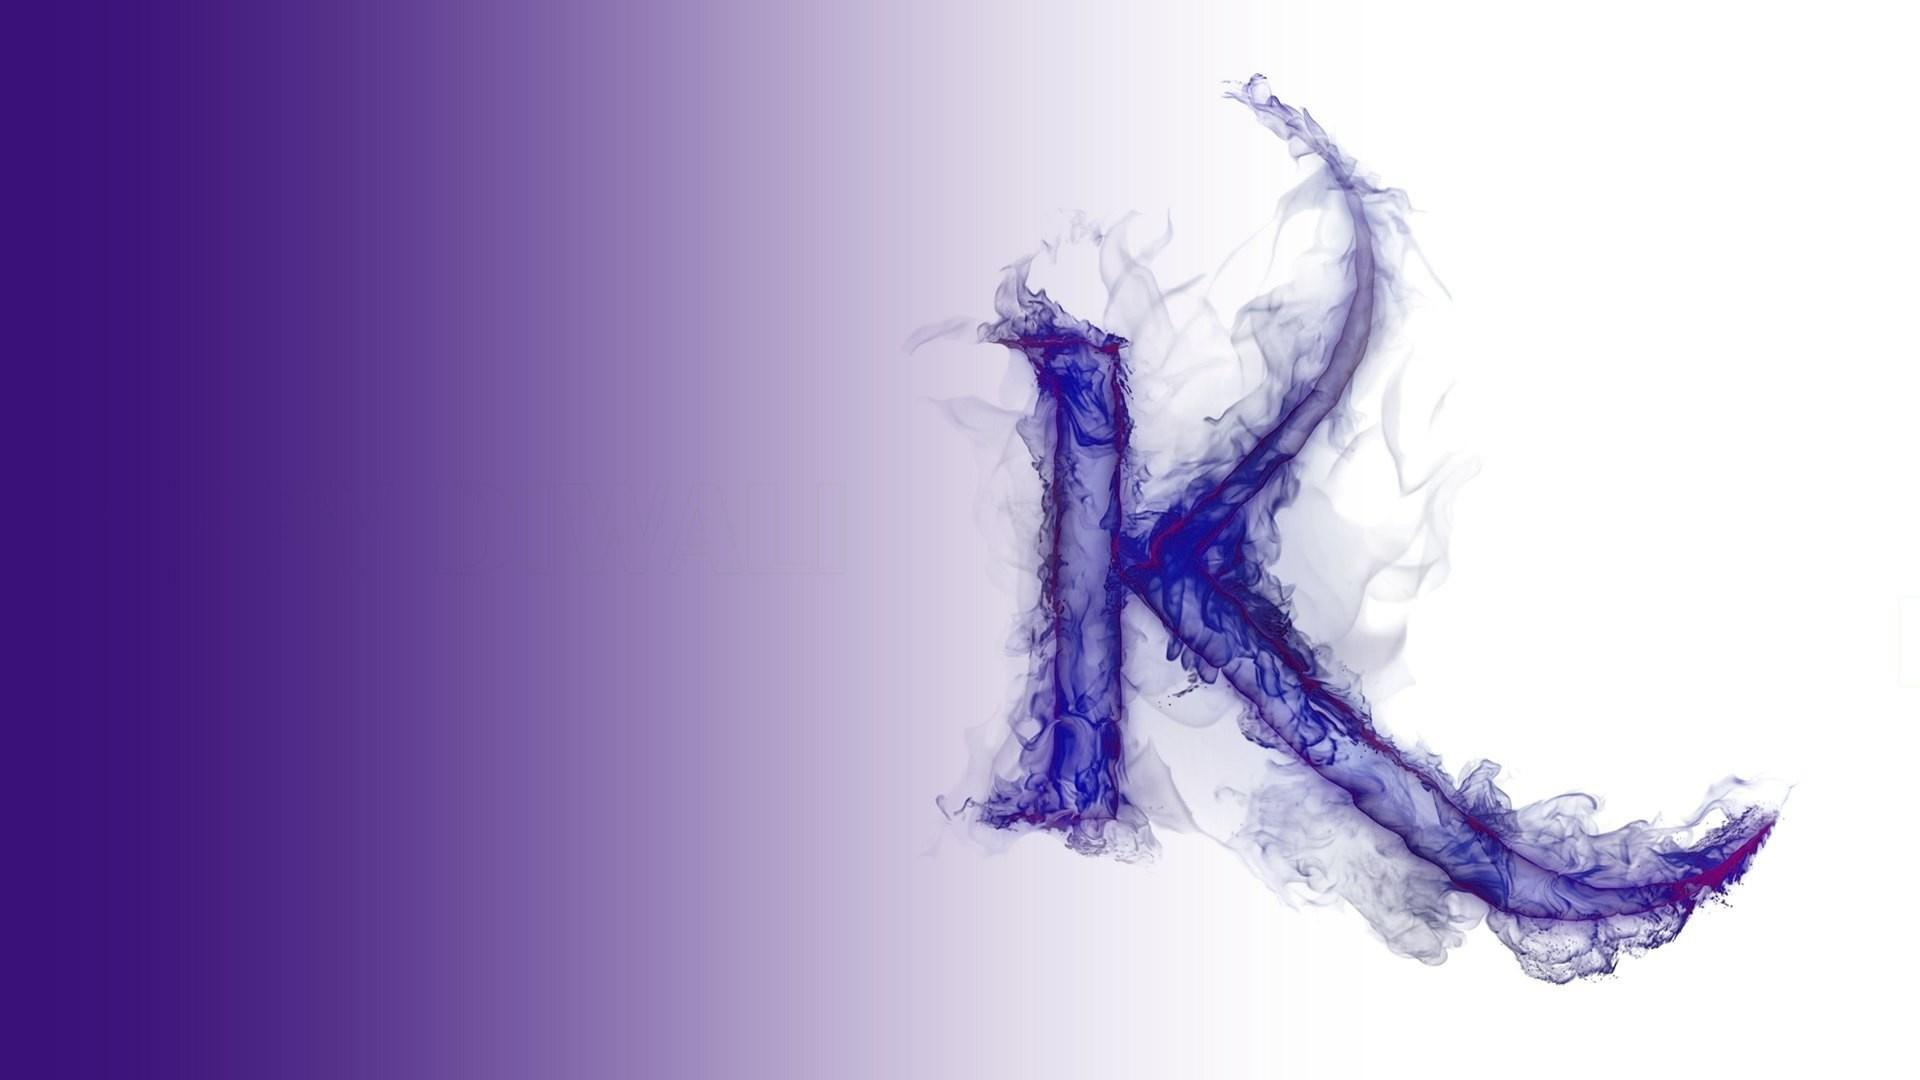 K Letter Wallpapers Download ✓ The Galleries of HD Wallpapers